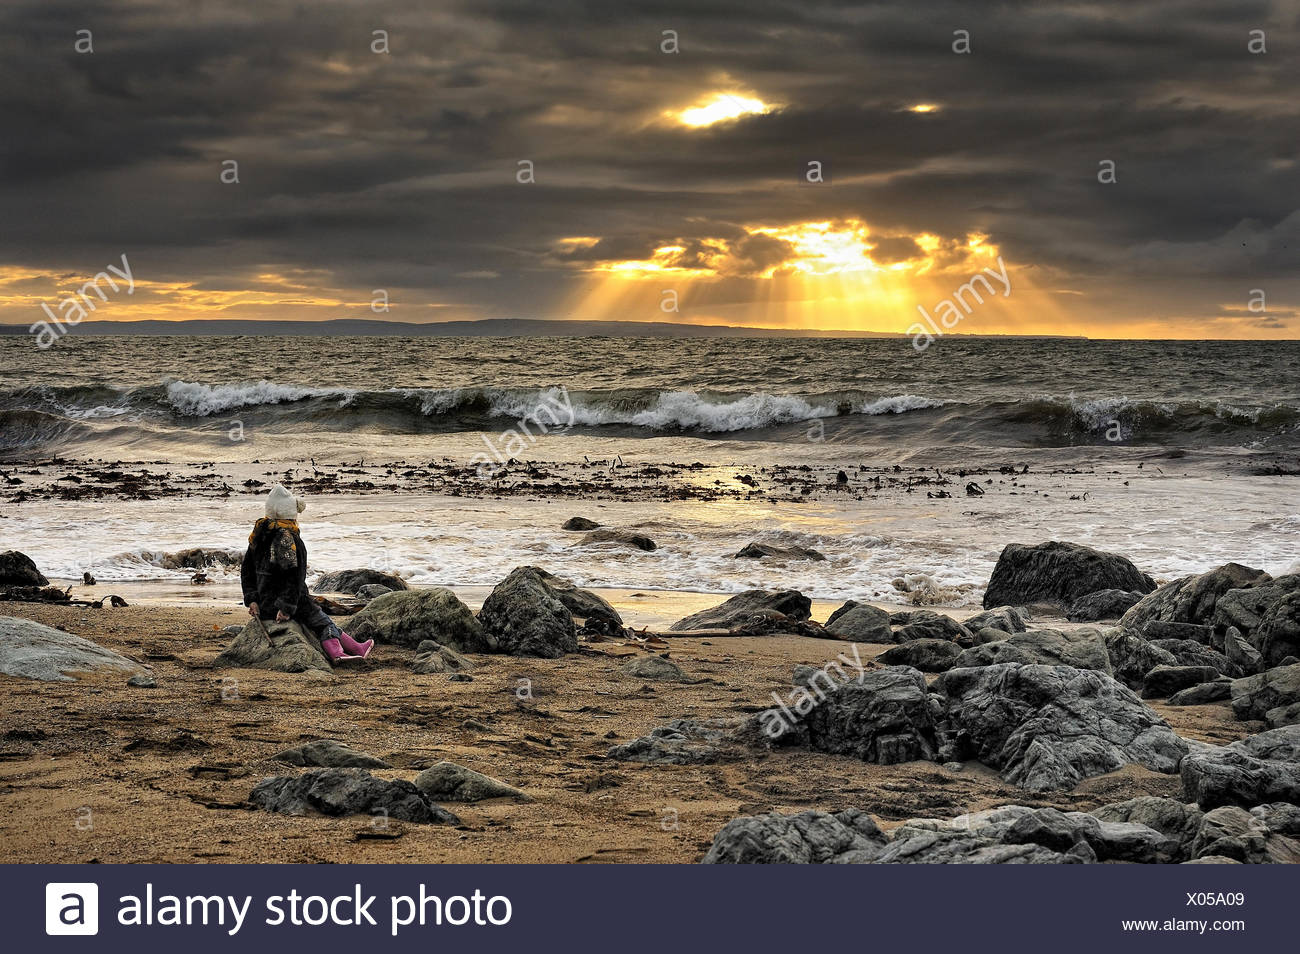 Ireland, Munster, County Waterford, Tramore, Girl (4-5) sitting on rock at beach - Stock Image